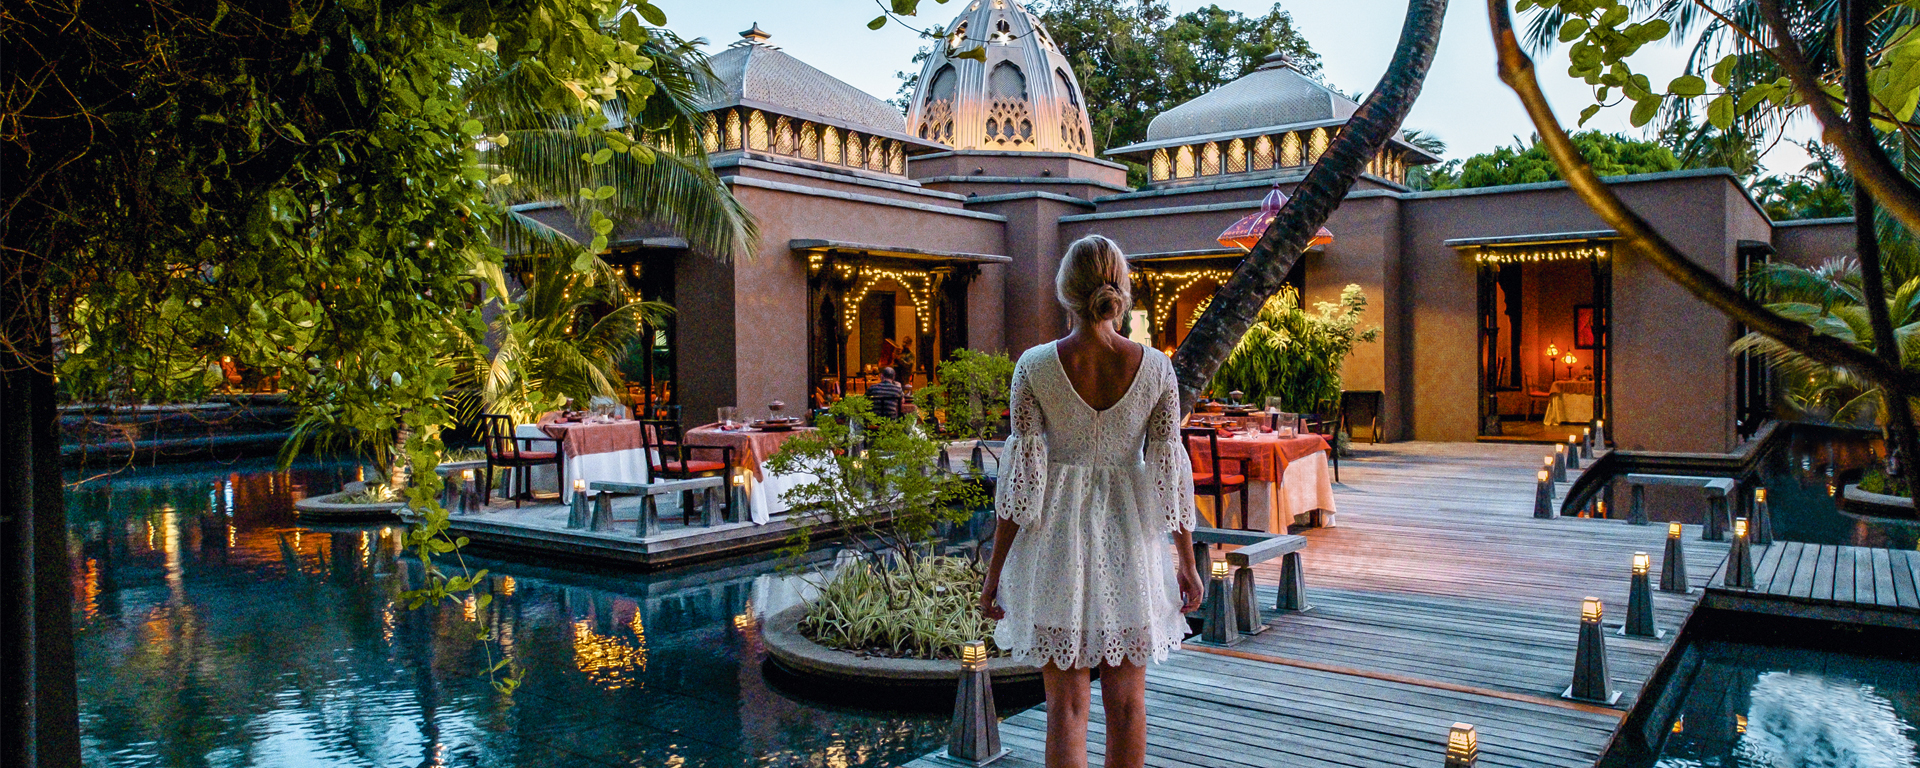 Remise spéciale – Beachcomber Resorts & Hotels in Mauritius